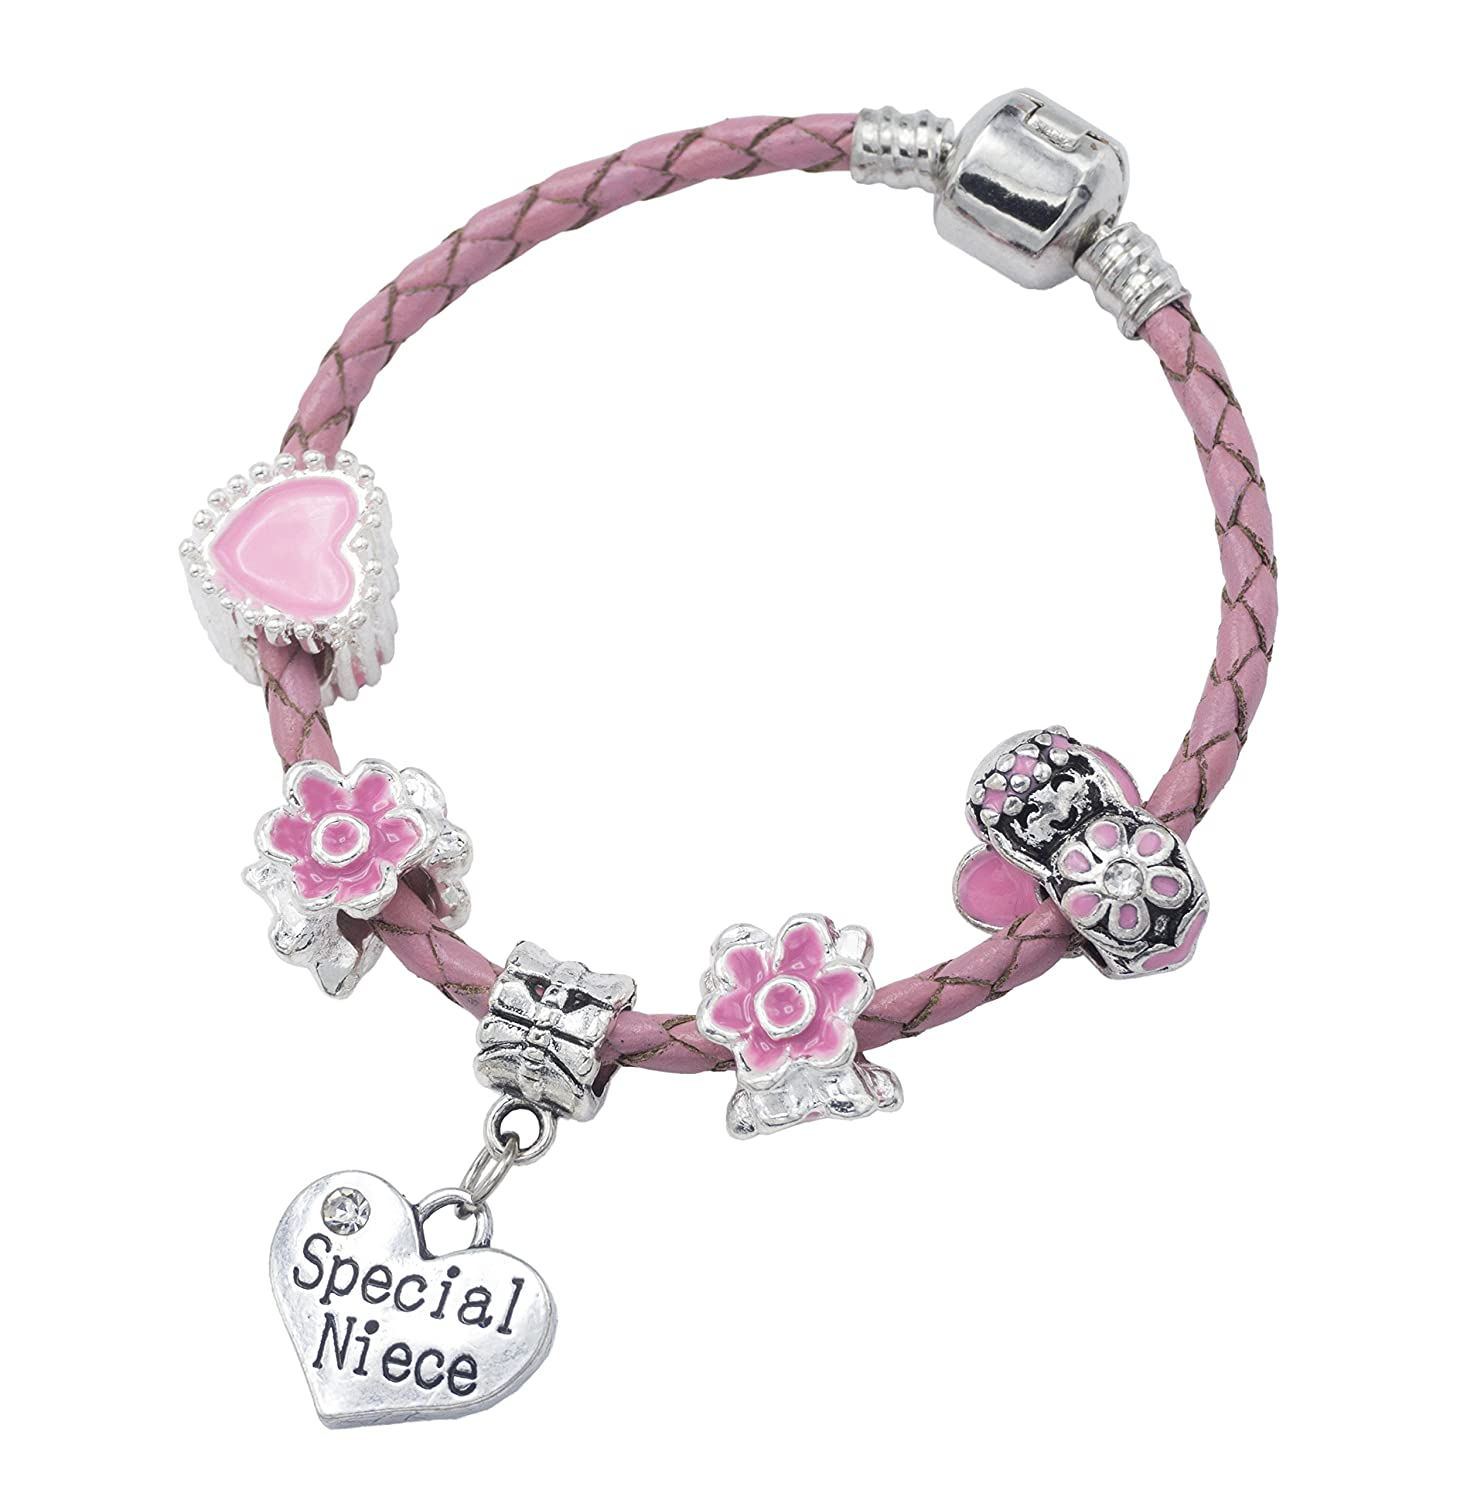 'Special Niece' Pink Leather Charm Bracelet for Girls Presented in High Quality Gift Pouch Jewellery Hut BRPNKLTSPECIALNIECE